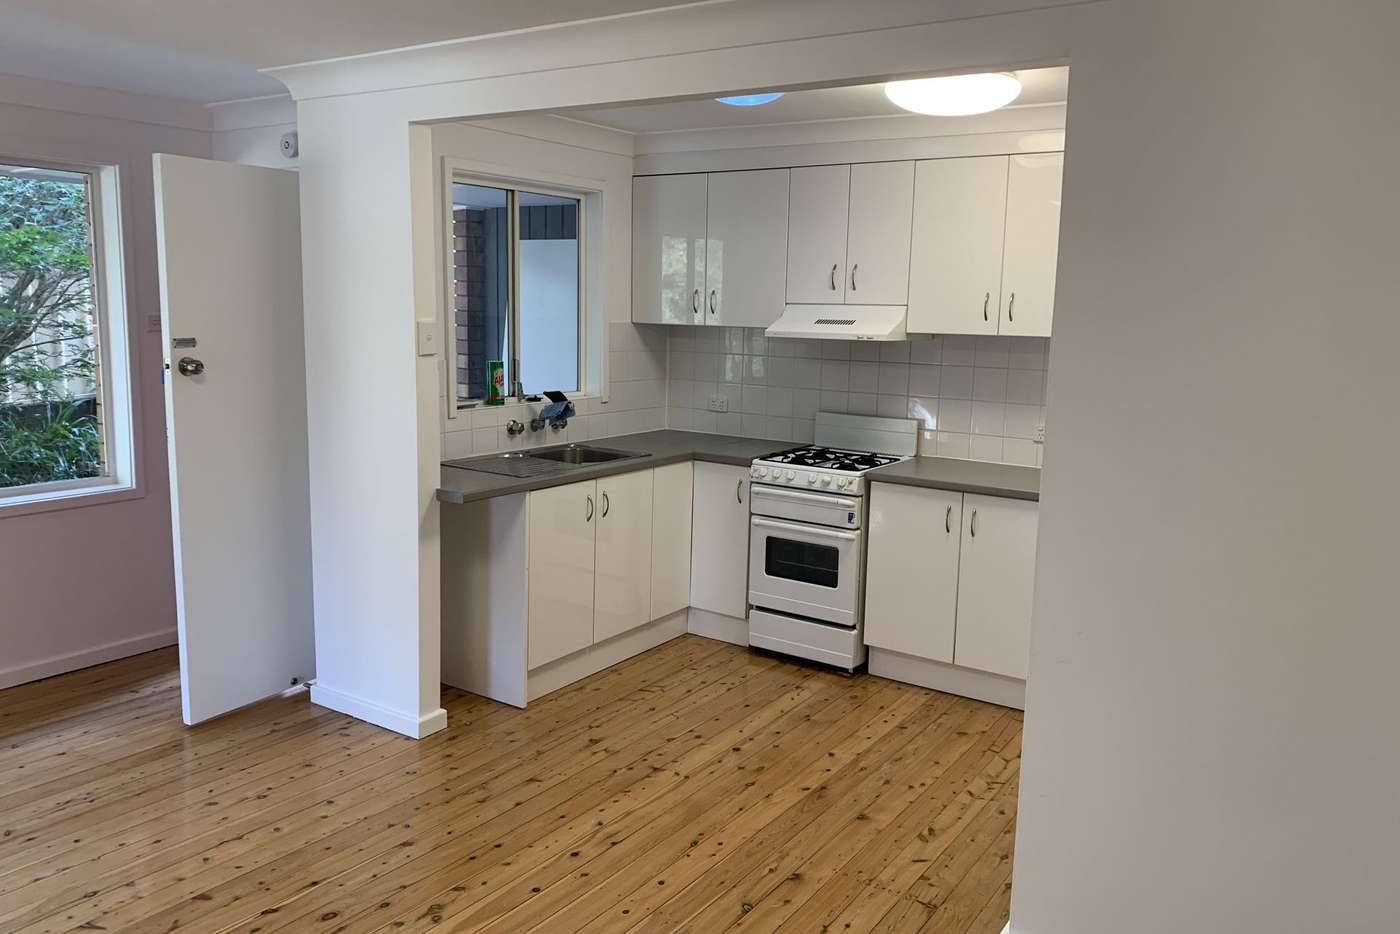 Main view of Homely apartment listing, 3/24 Garden Grove Parade, Adamstown Heights NSW 2289